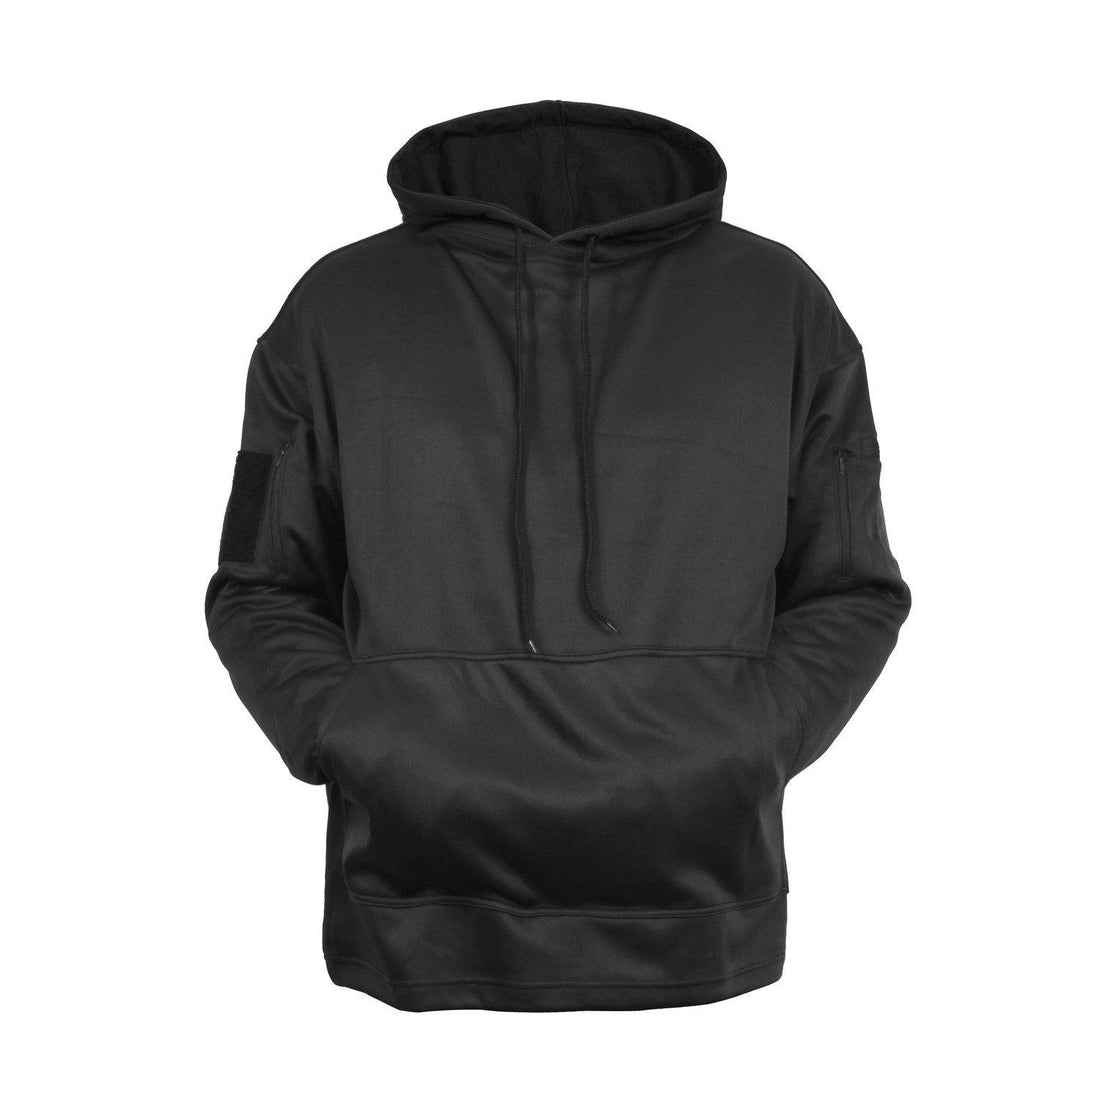 Black concealed carry hoodie from Marine Corps Direct.